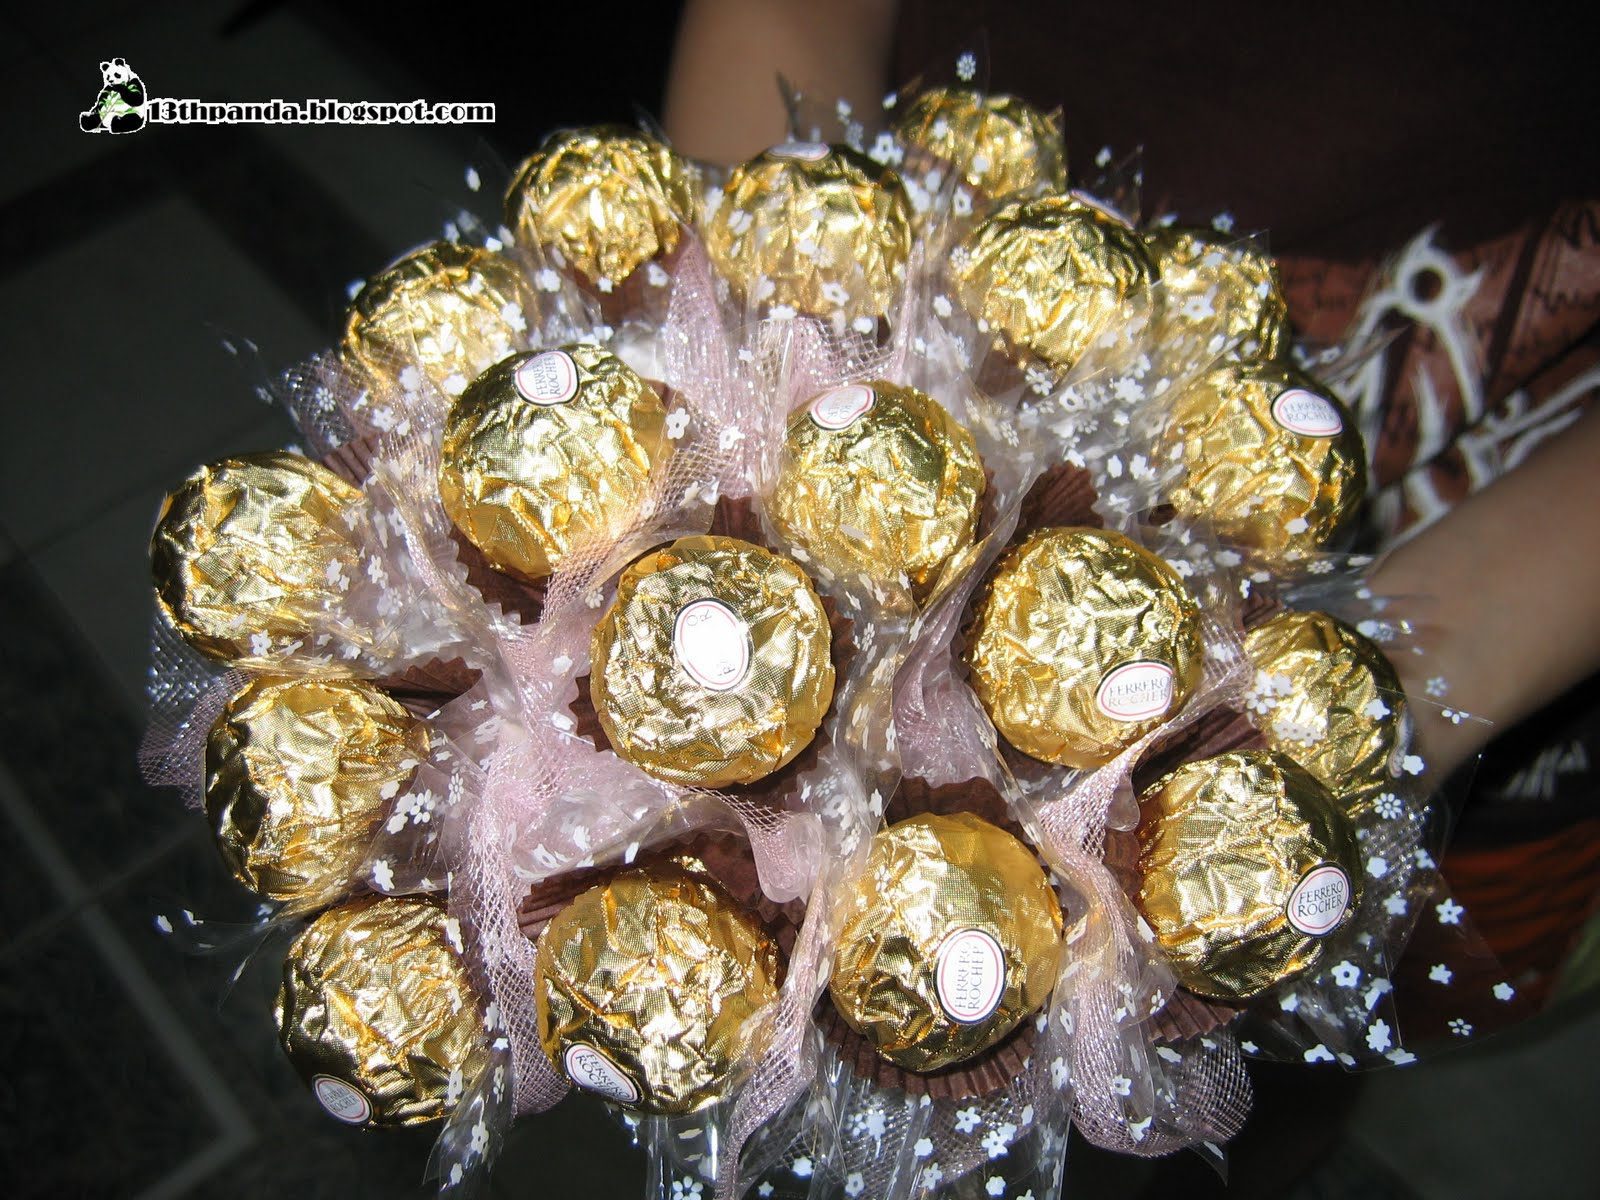 13thpanda first ever handmade ferrero rocher bouquet this is how 18 stalks looked like before i wrap it it may look simple but its not as easy as you think all the sewing and cutting and cello taping izmirmasajfo